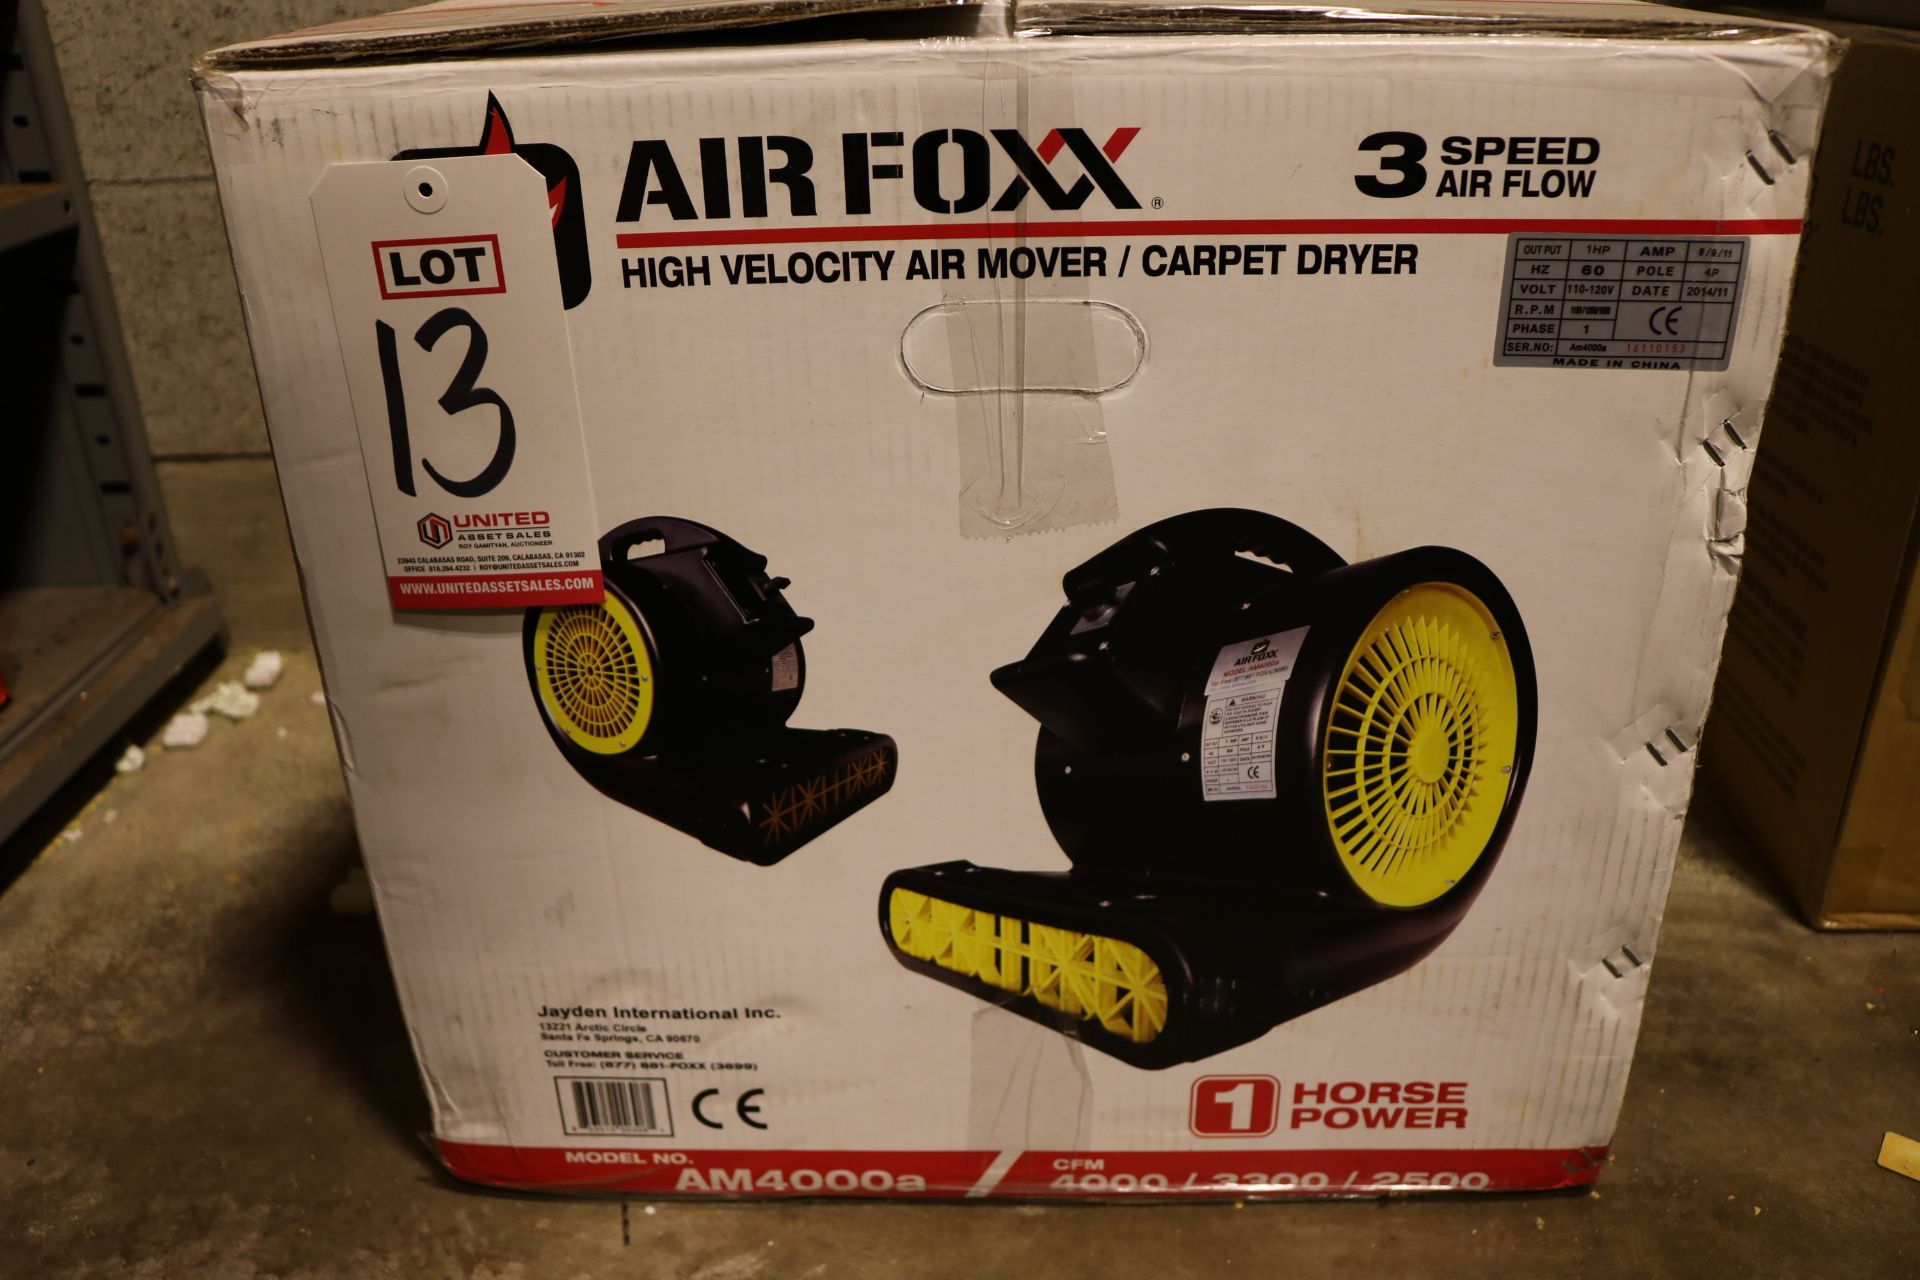 Lot 13 - AIR FOXX 3-SPEED HIGH VELOCITY AIR MOVER, MODEL AM4000A, 1 HP, 4000 CFM, NEVER UNBOXED